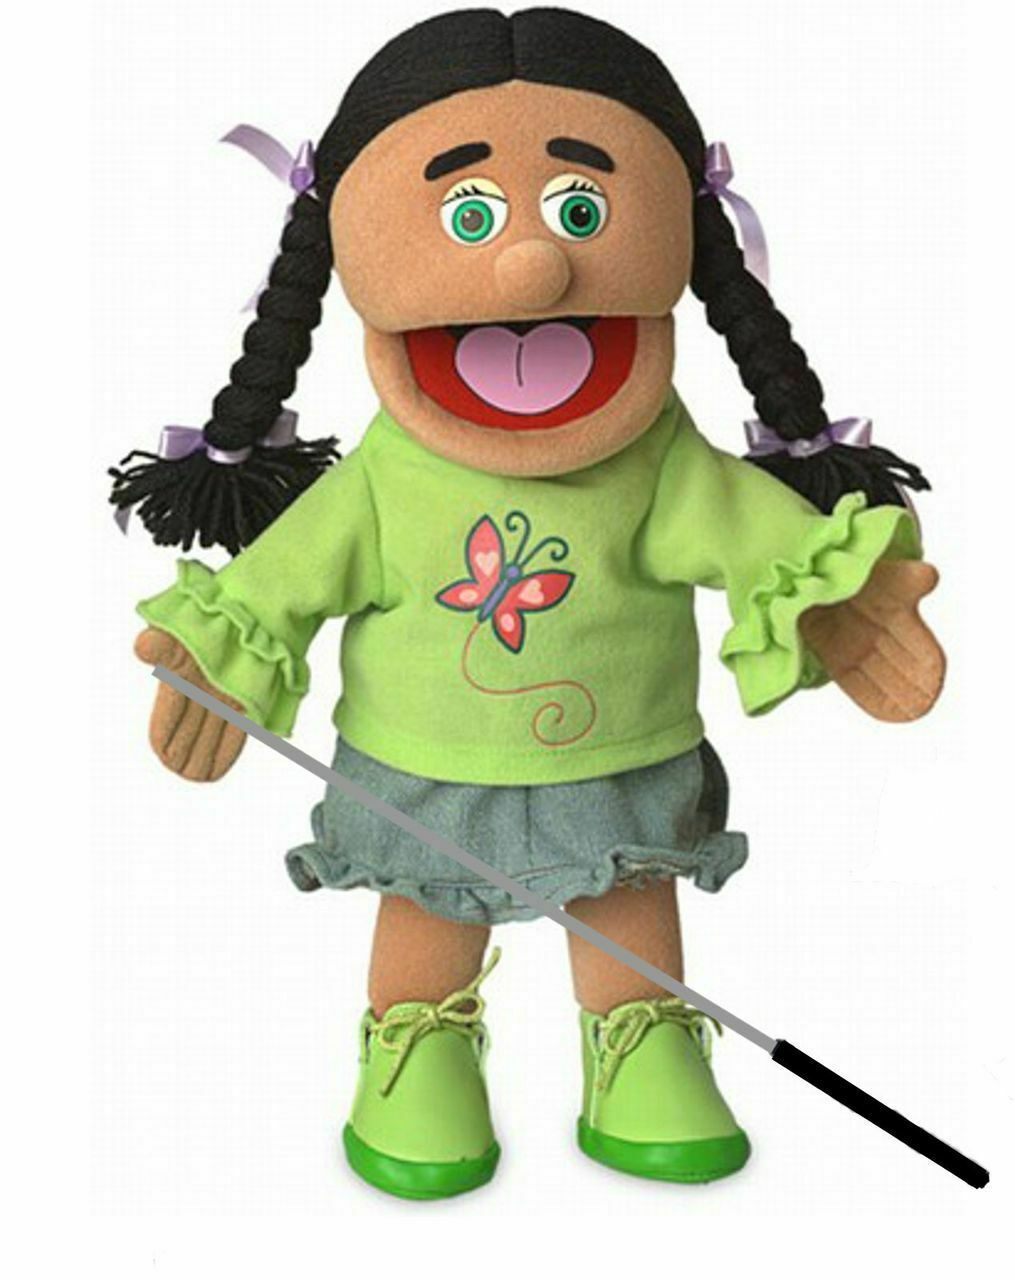 Silly Puppets Jasmine Puppet Bundle 14 inch with Arm Rod